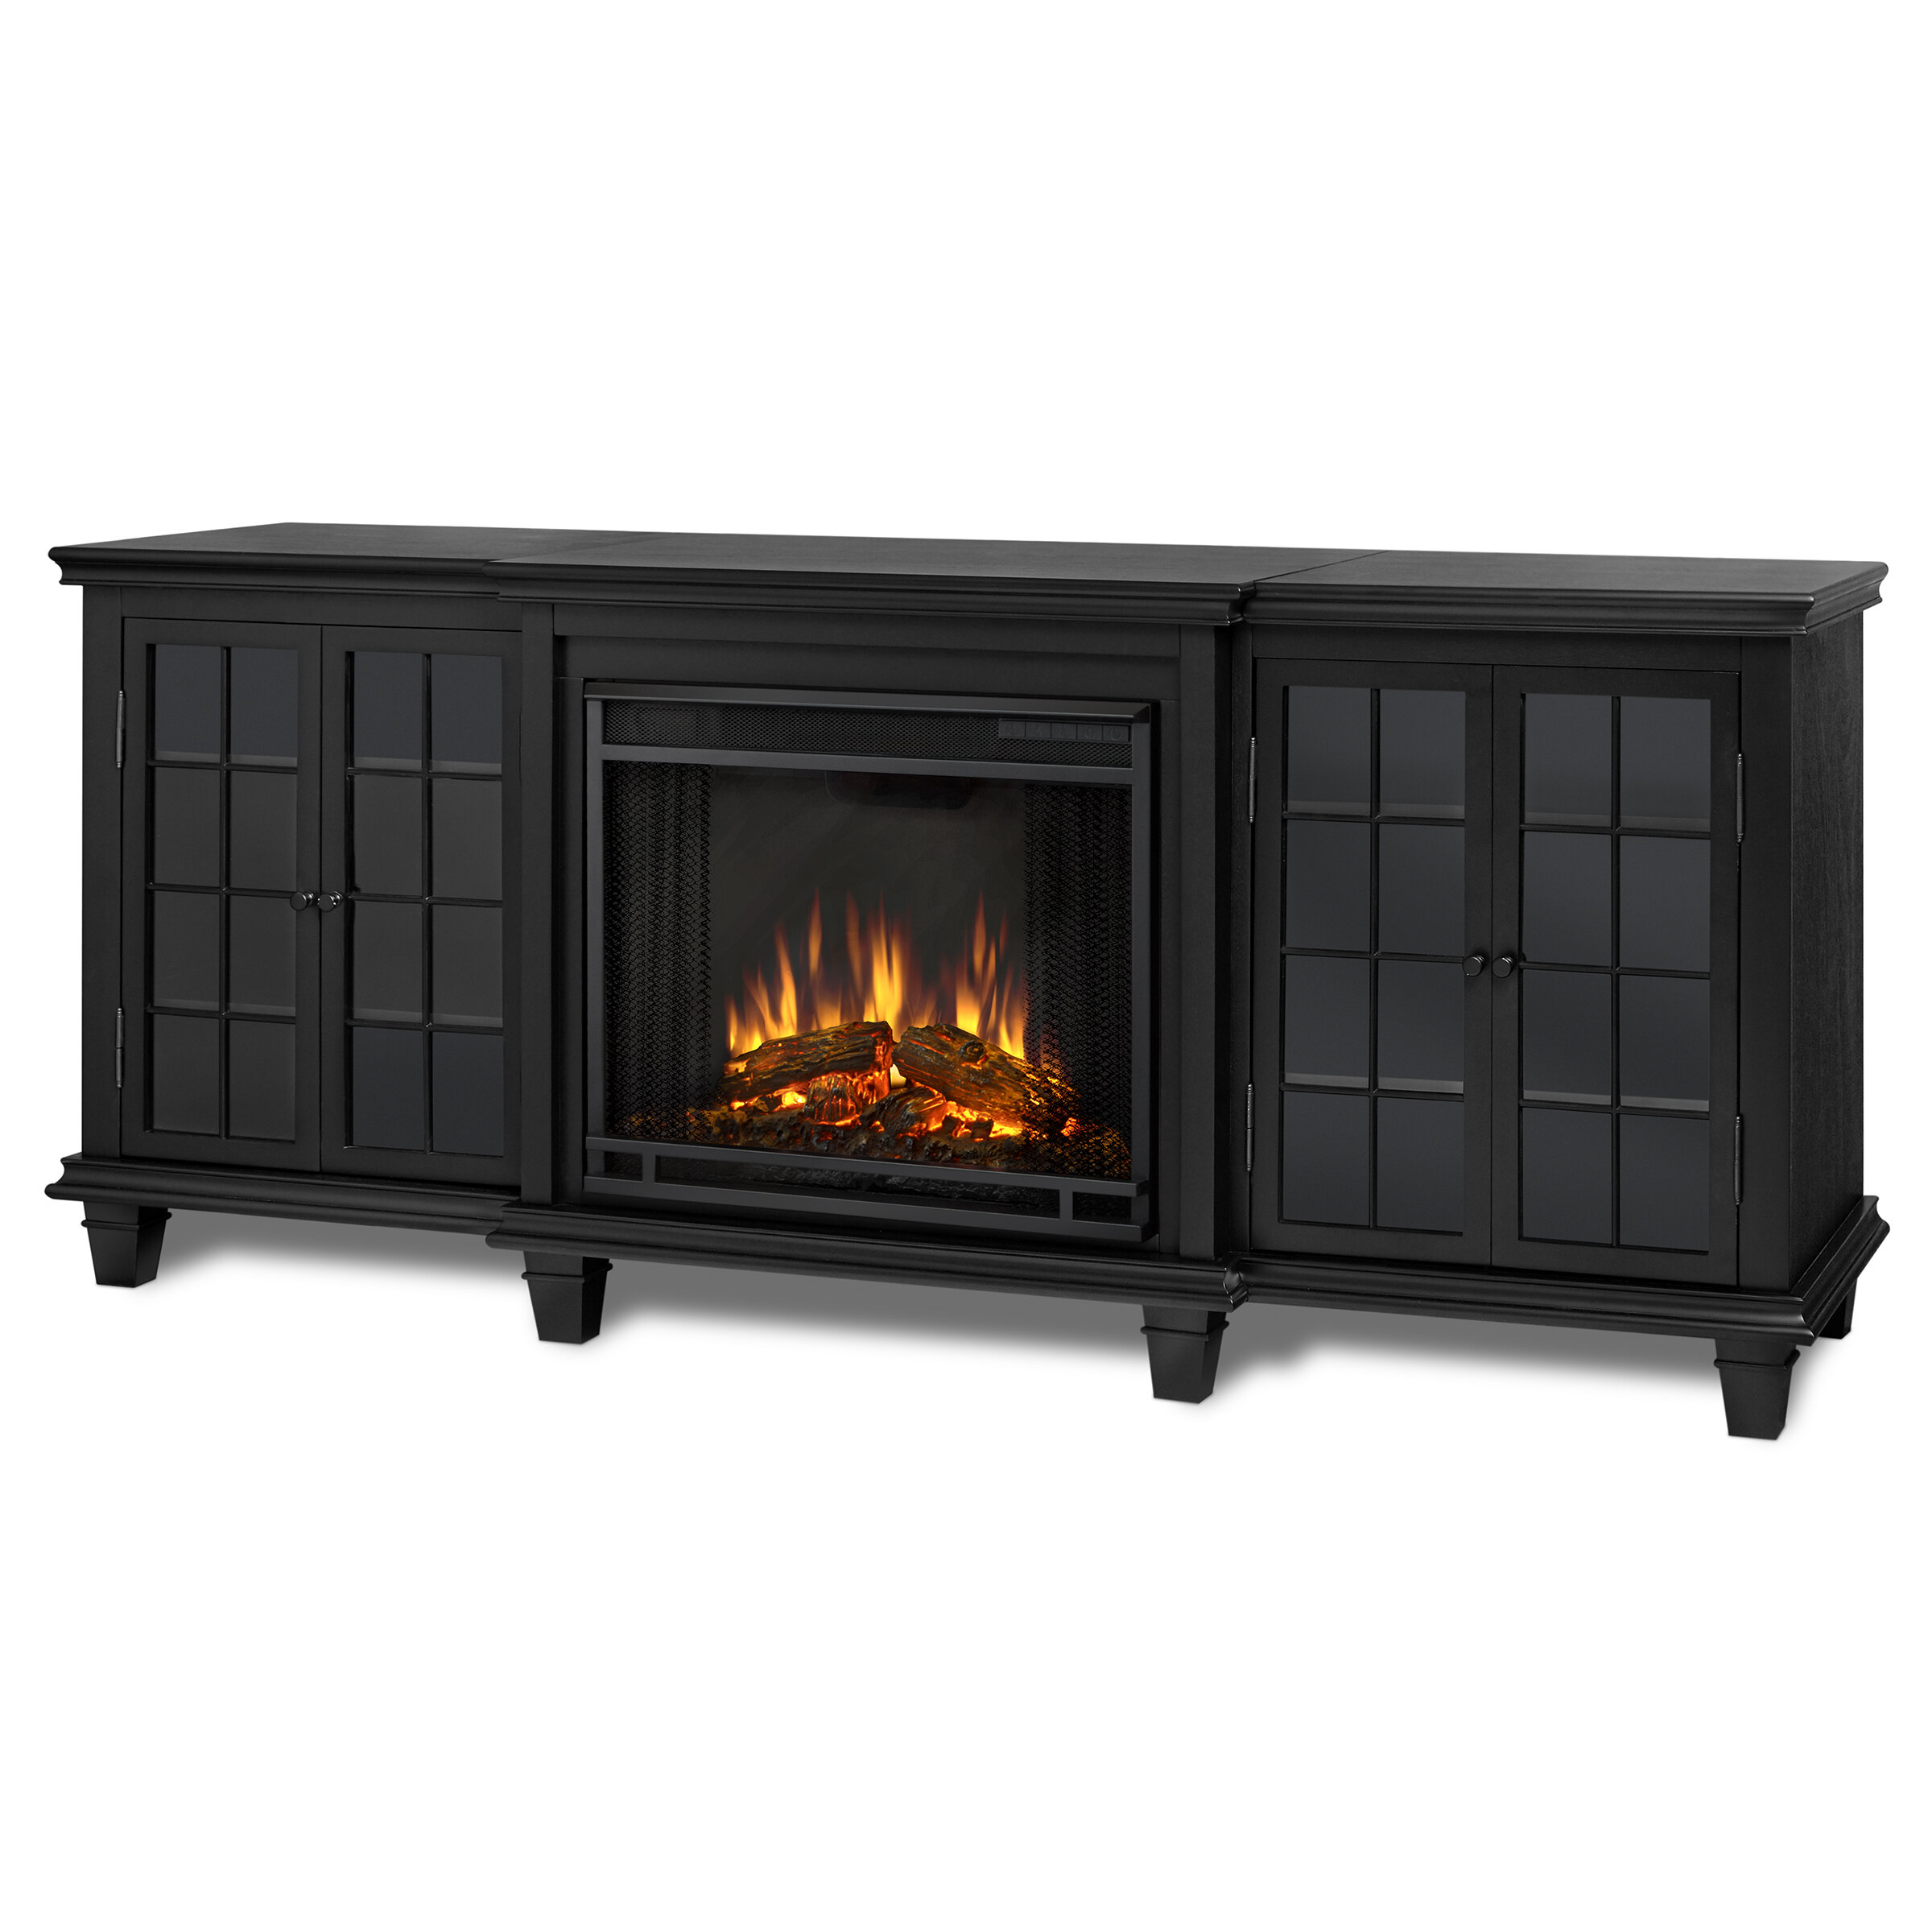 stand dimplex with axel products electric tv fireplace angletv cheap